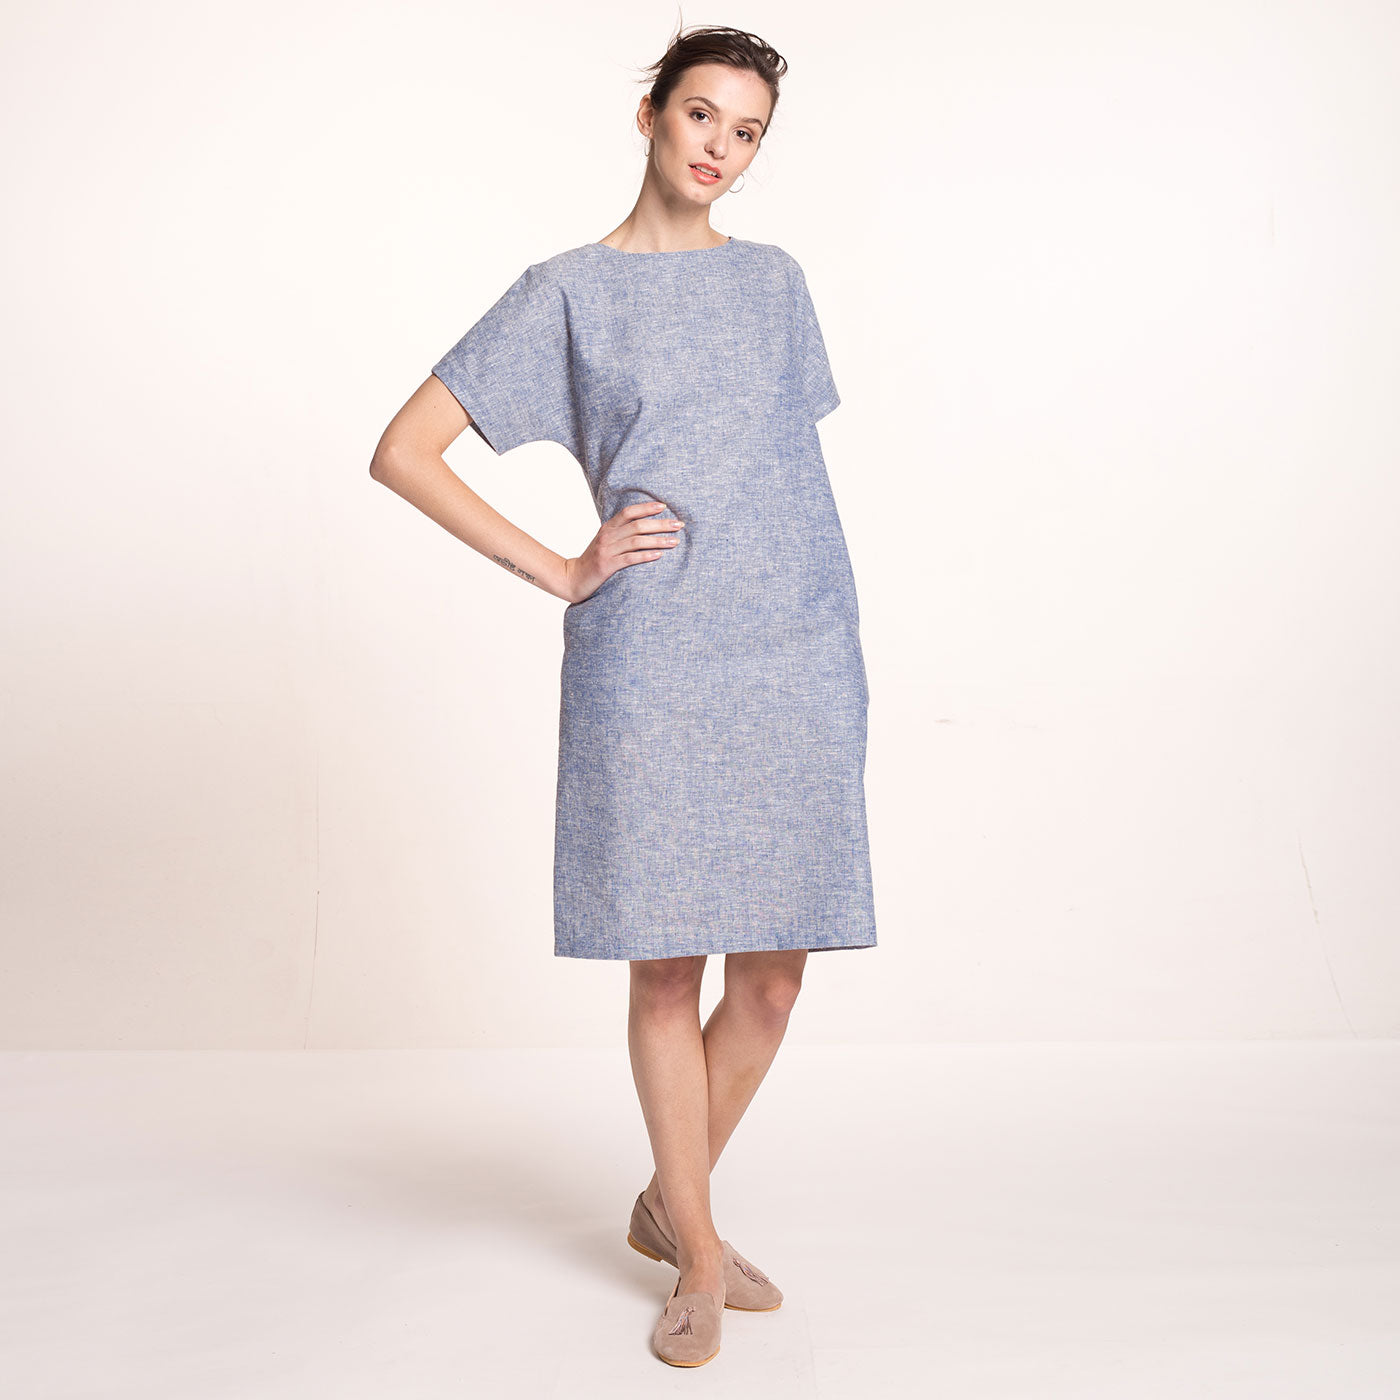 The model wears a light blue, sustainable, organic cotton and hemp dress, with short sleeves and round neckline at the front..